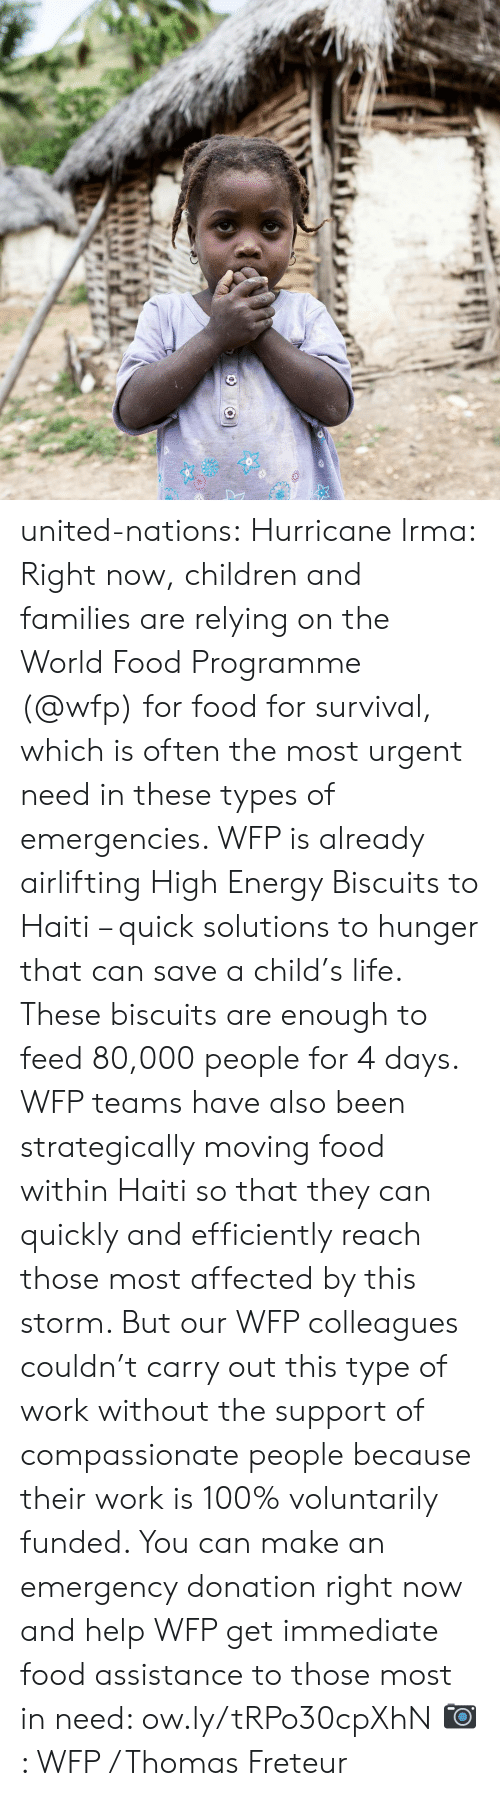 High Energy: united-nations:  Hurricane Irma: Right now, children and families are relying on the World Food Programme (@wfp) for food for survival, which is often the most urgent need in these types of emergencies. WFP is already airlifting High Energy Biscuits to Haiti – quick solutions to hunger that can save a child's life. These biscuits are enough to feed 80,000 people for 4 days. WFP teams have also been strategically moving food within Haiti so that they can quickly and efficiently reach those most affected by this storm. But our WFP colleagues couldn't carry out this type of work without the support of compassionate people because their work is 100% voluntarily funded. You can make an emergency donation right now and help WFP get immediate food assistance to those most in need: ow.ly/tRPo30cpXhN  📷: WFP / Thomas Freteur